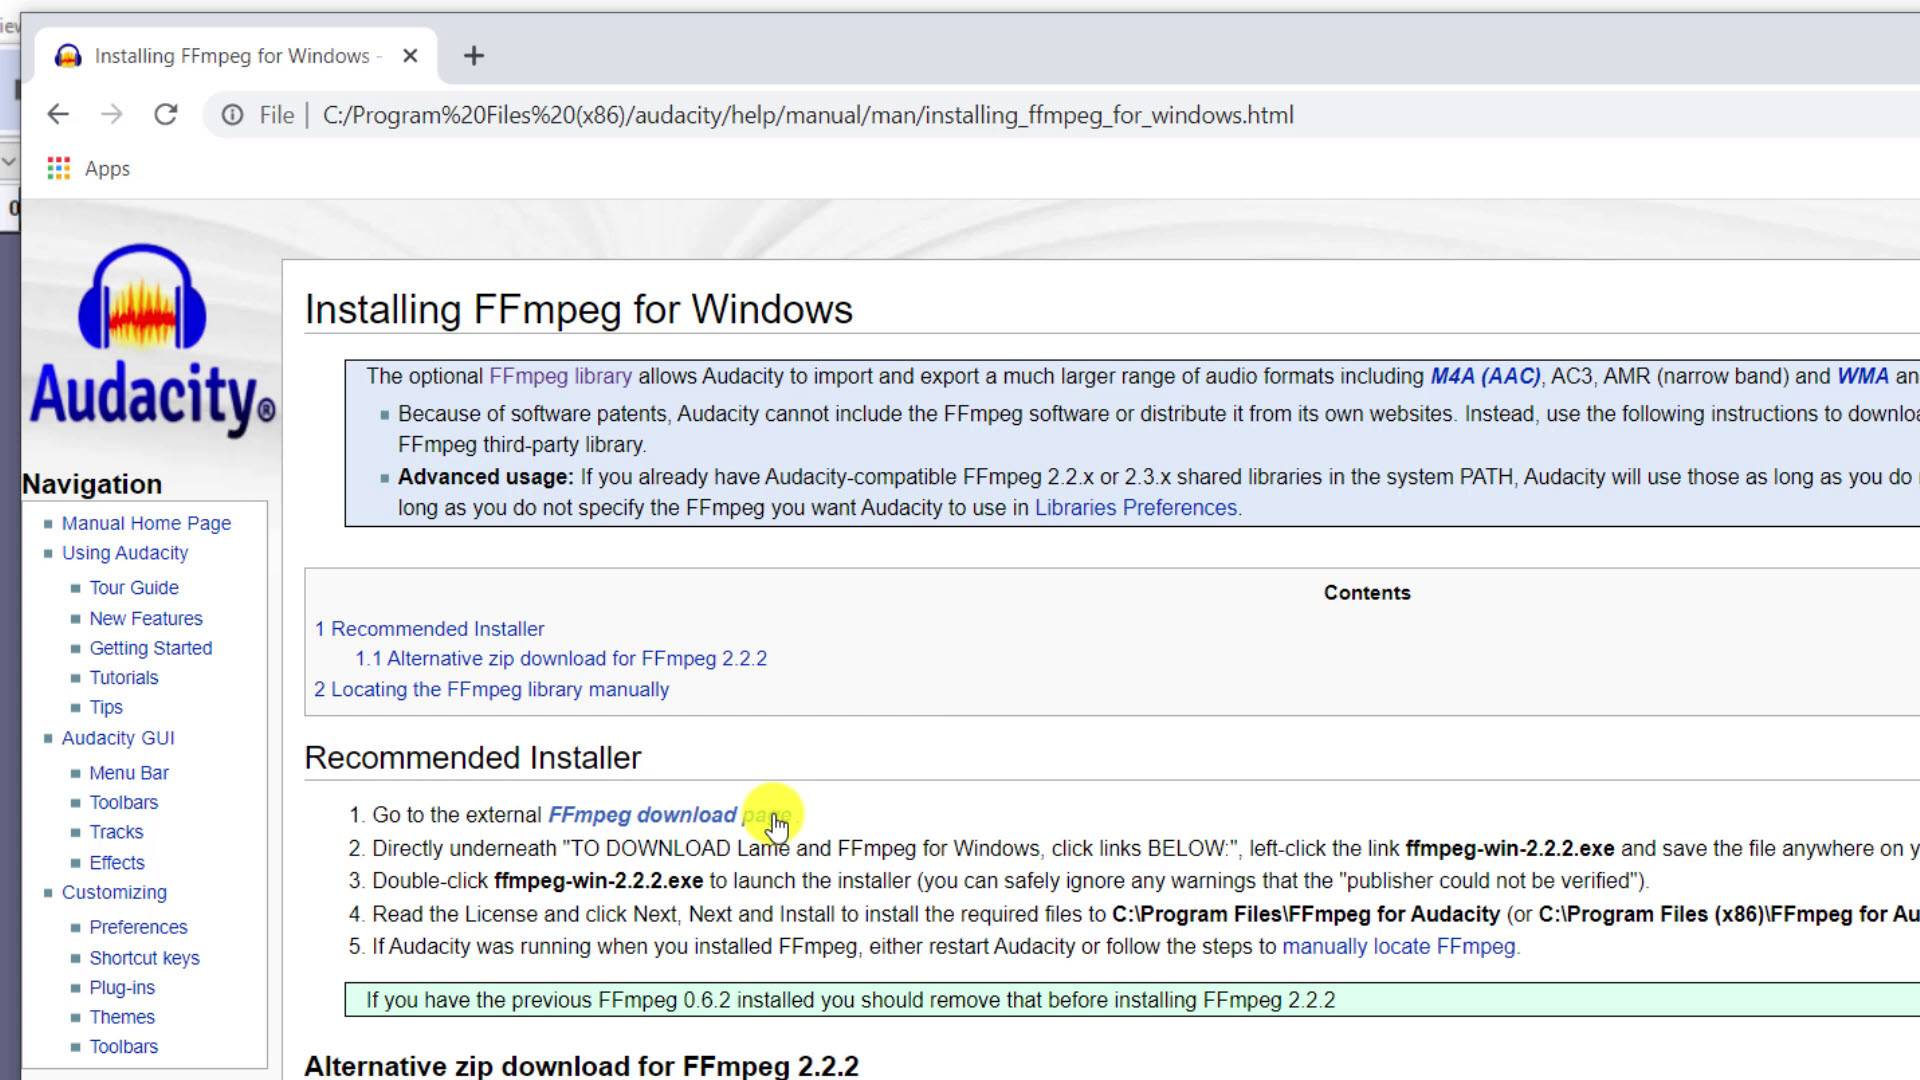 03-ffmpeg link for windows on audacity webpages